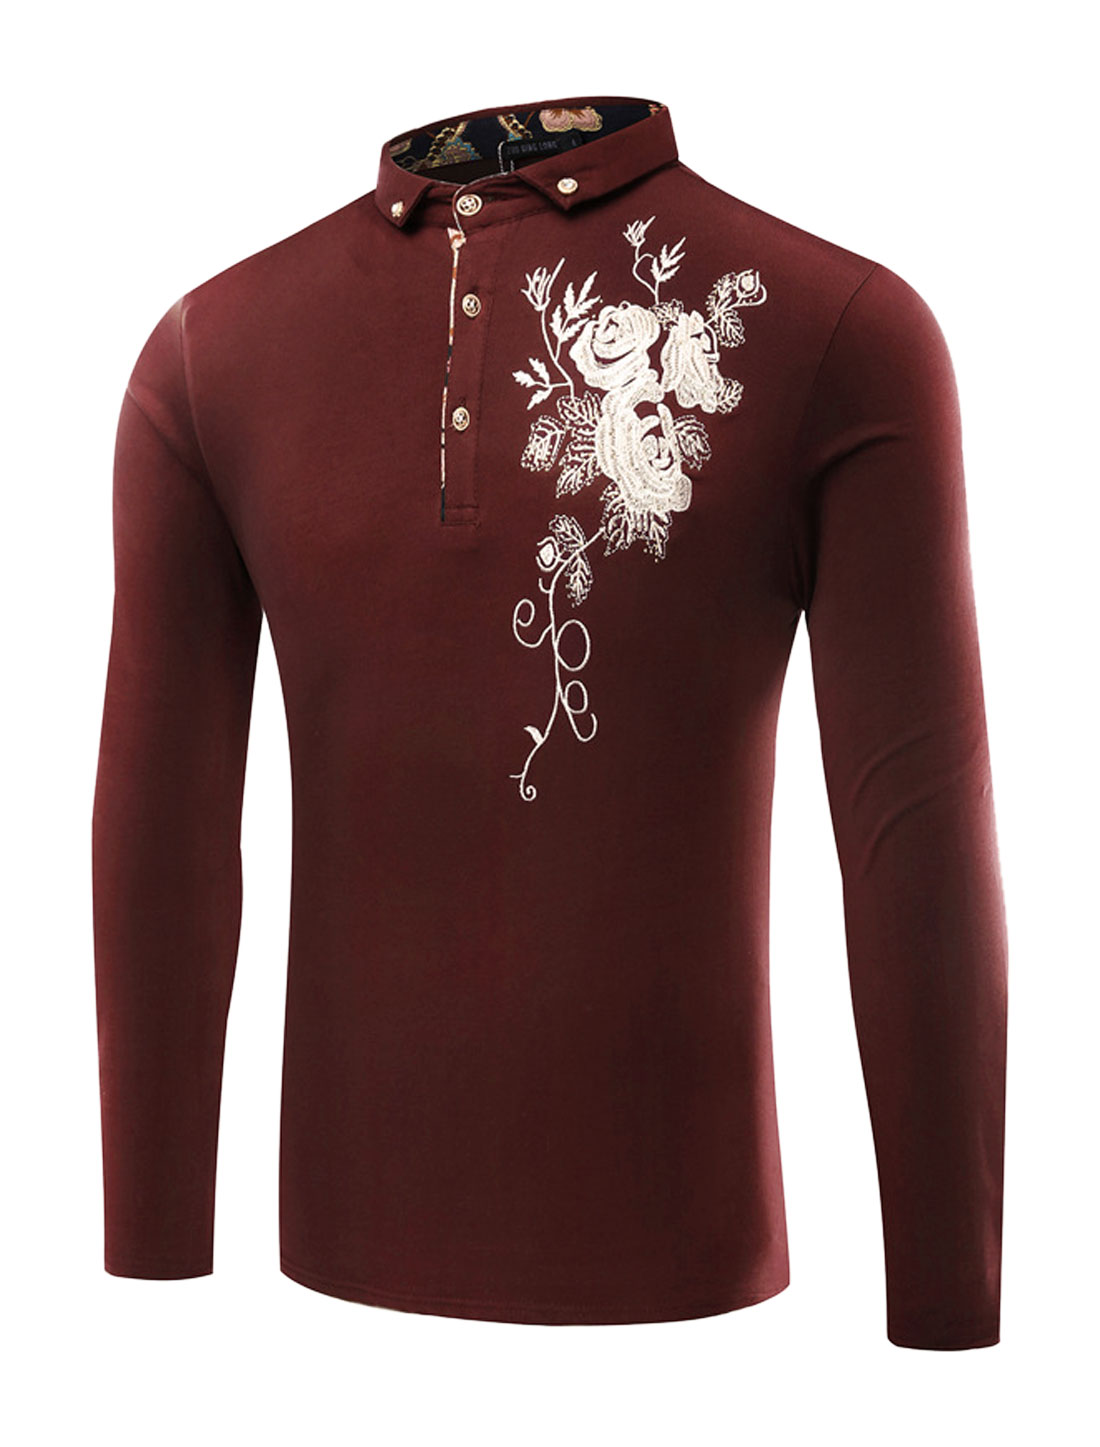 Men Rhinestones Decor Floral Embroidery T-Shirt Red M